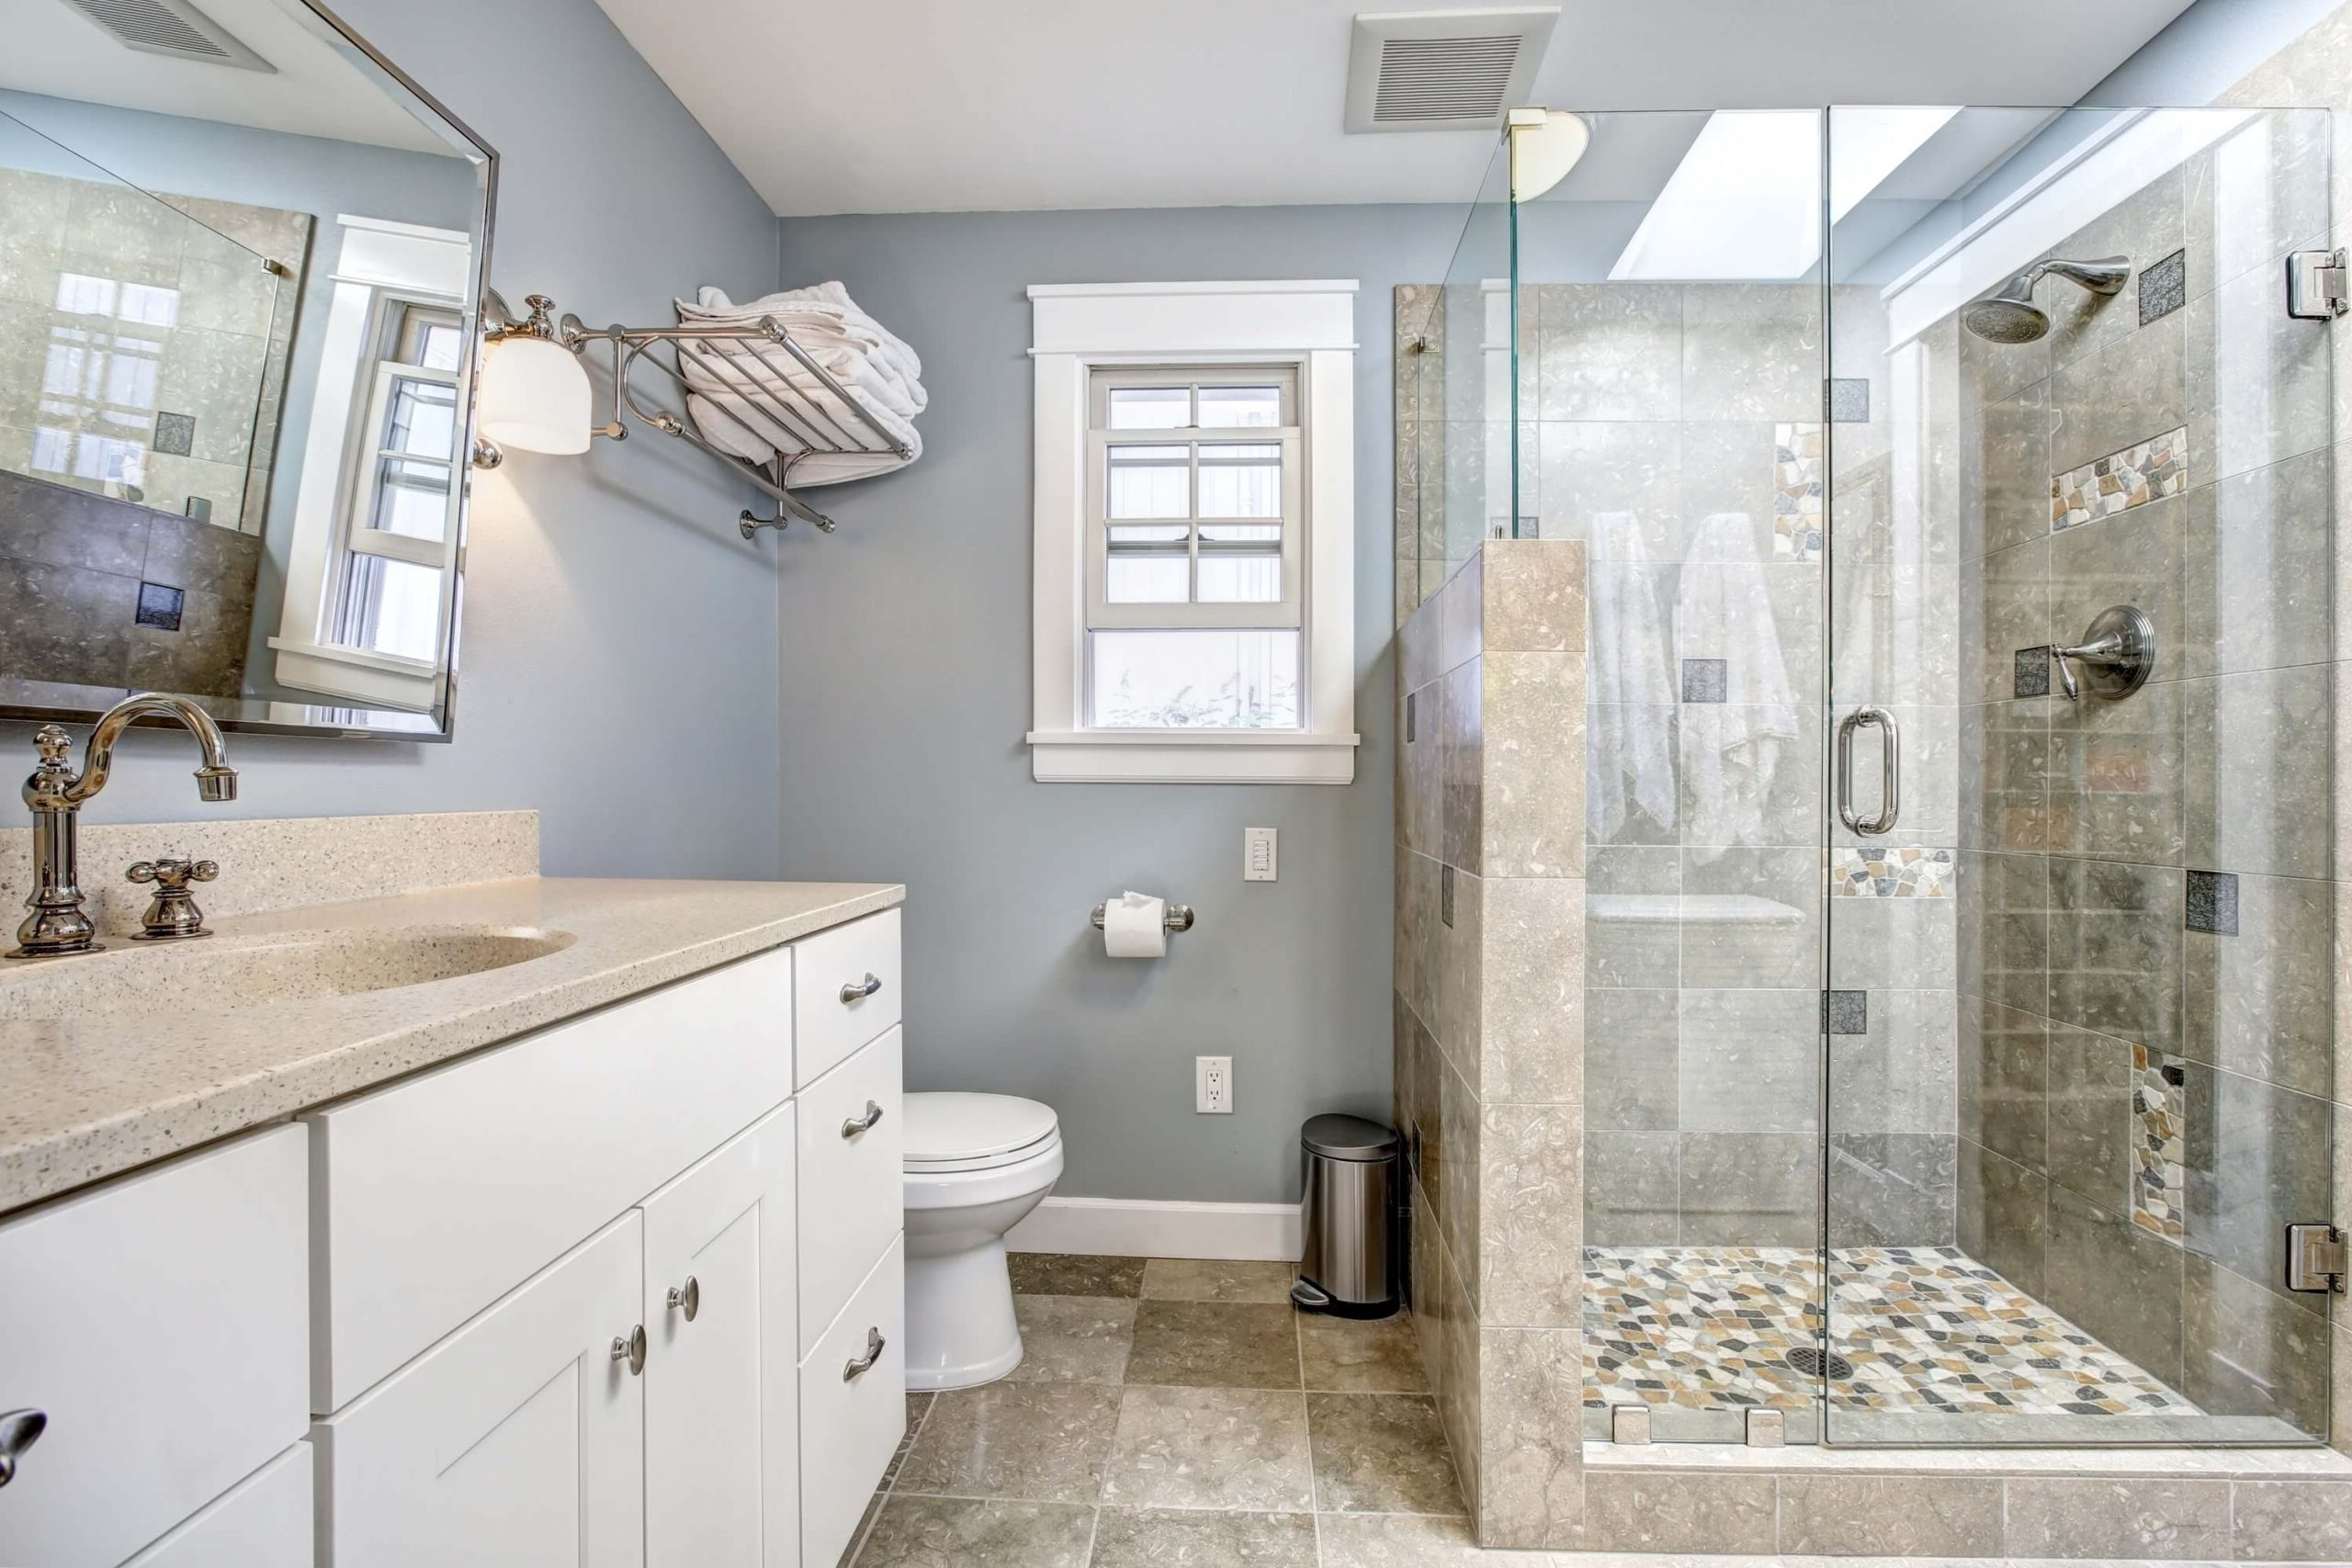 How To Clean A Pebble Shower Floor | Builddirect Learning 10+ Bathroom Pebble Tile Inspirations